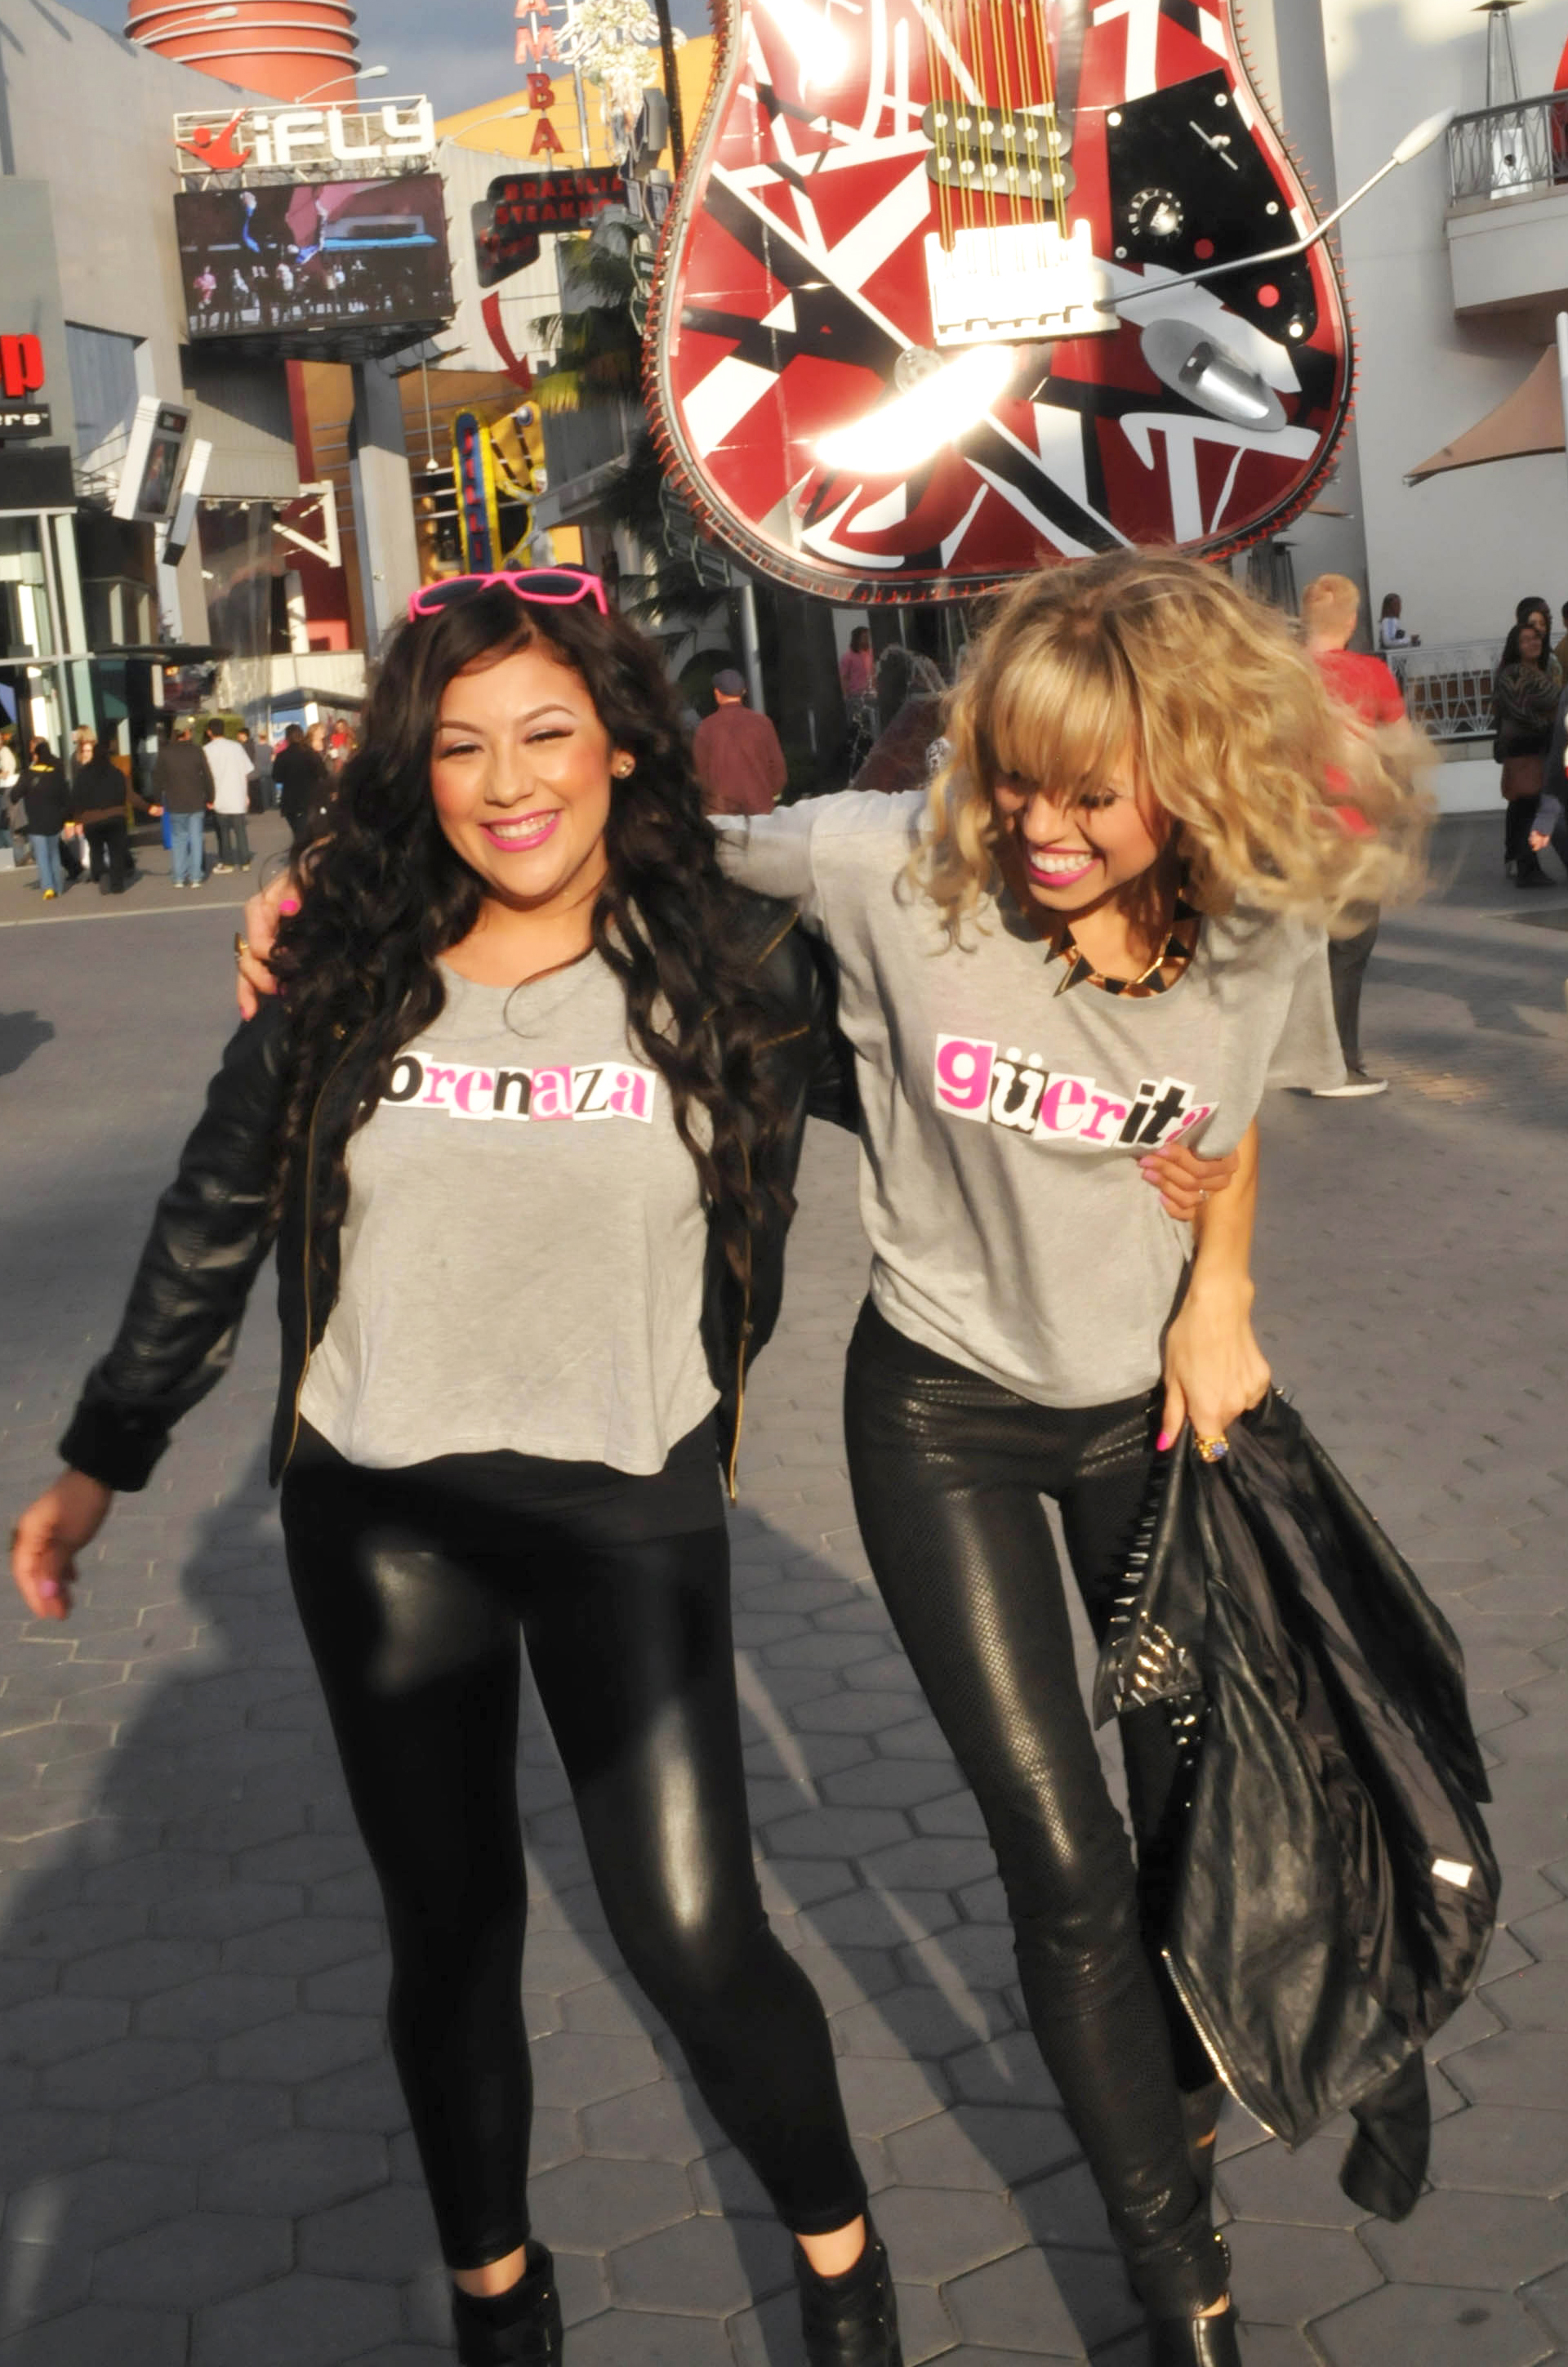 Nelly Azarcoya and Holly Tuggy modeling güerita and morenaza shirts